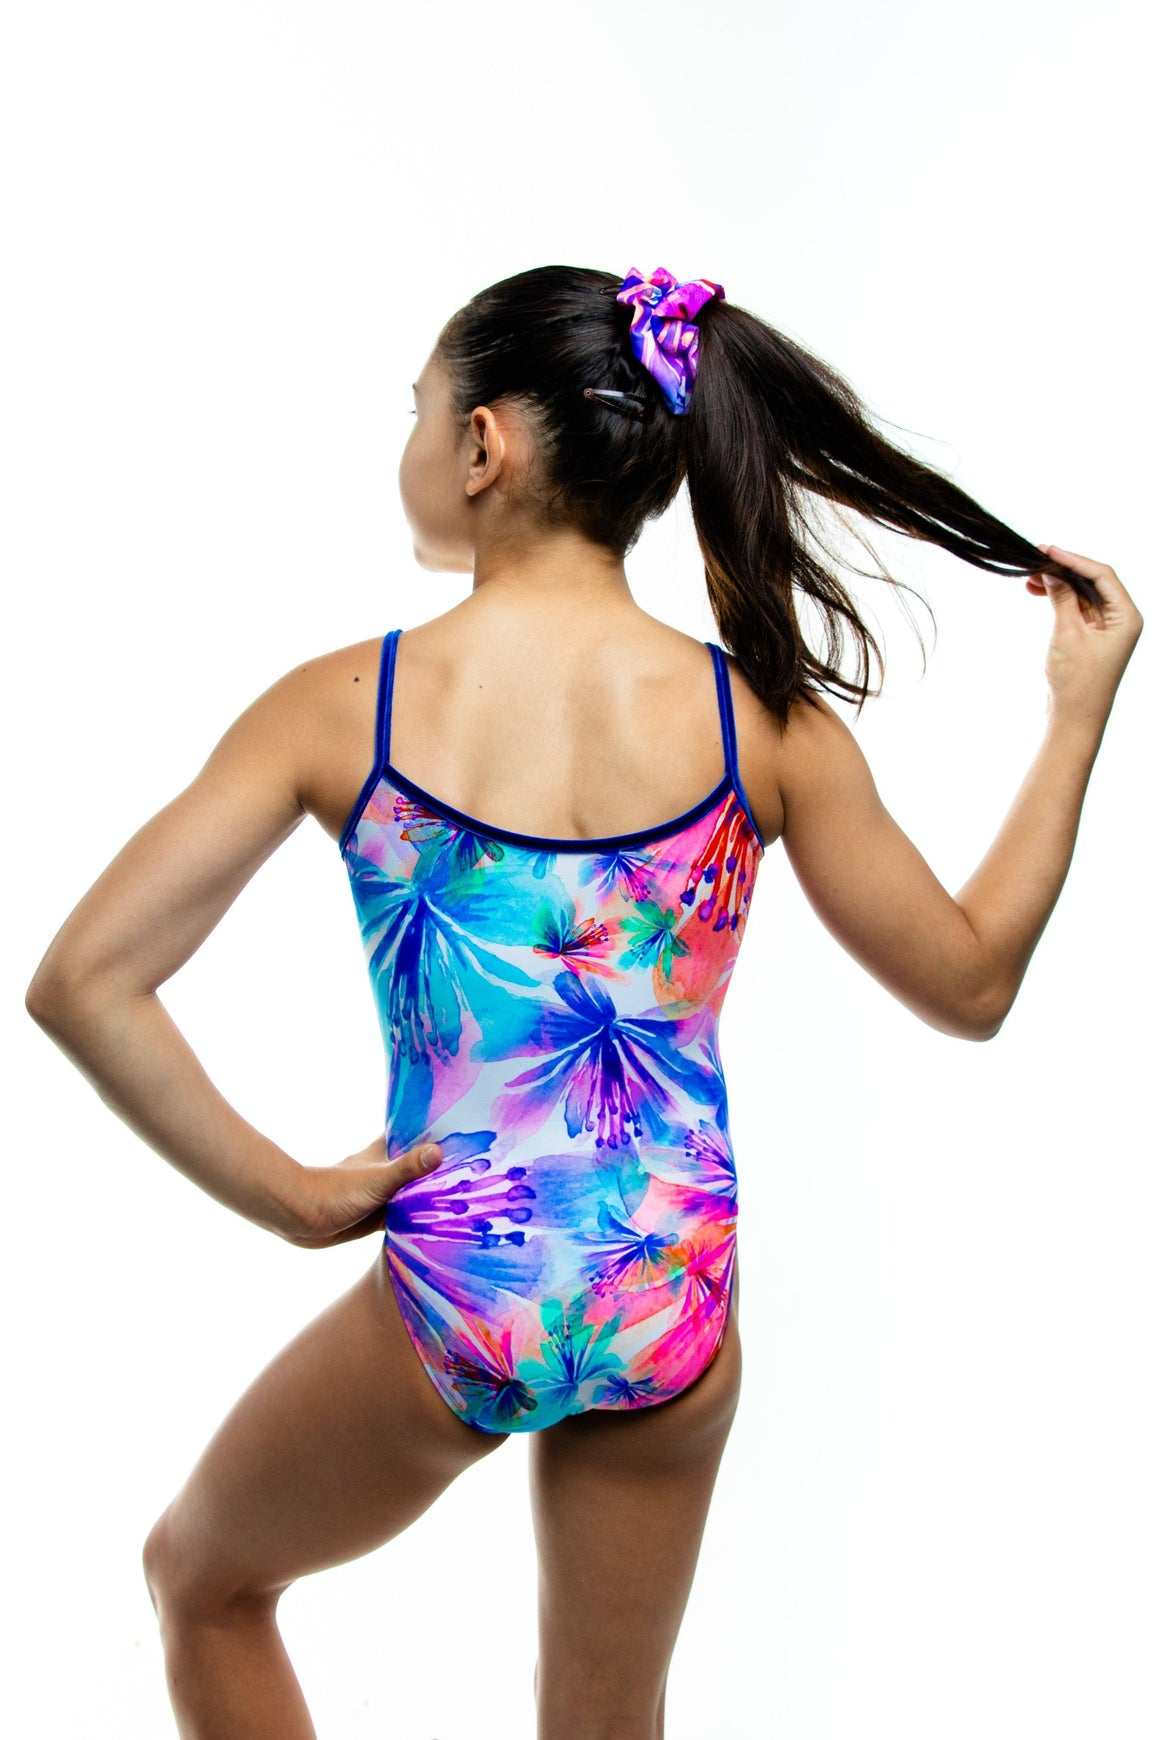 Summer breeze, gymnastics, Rebecca's Mom Leotards, Leotard.com - image